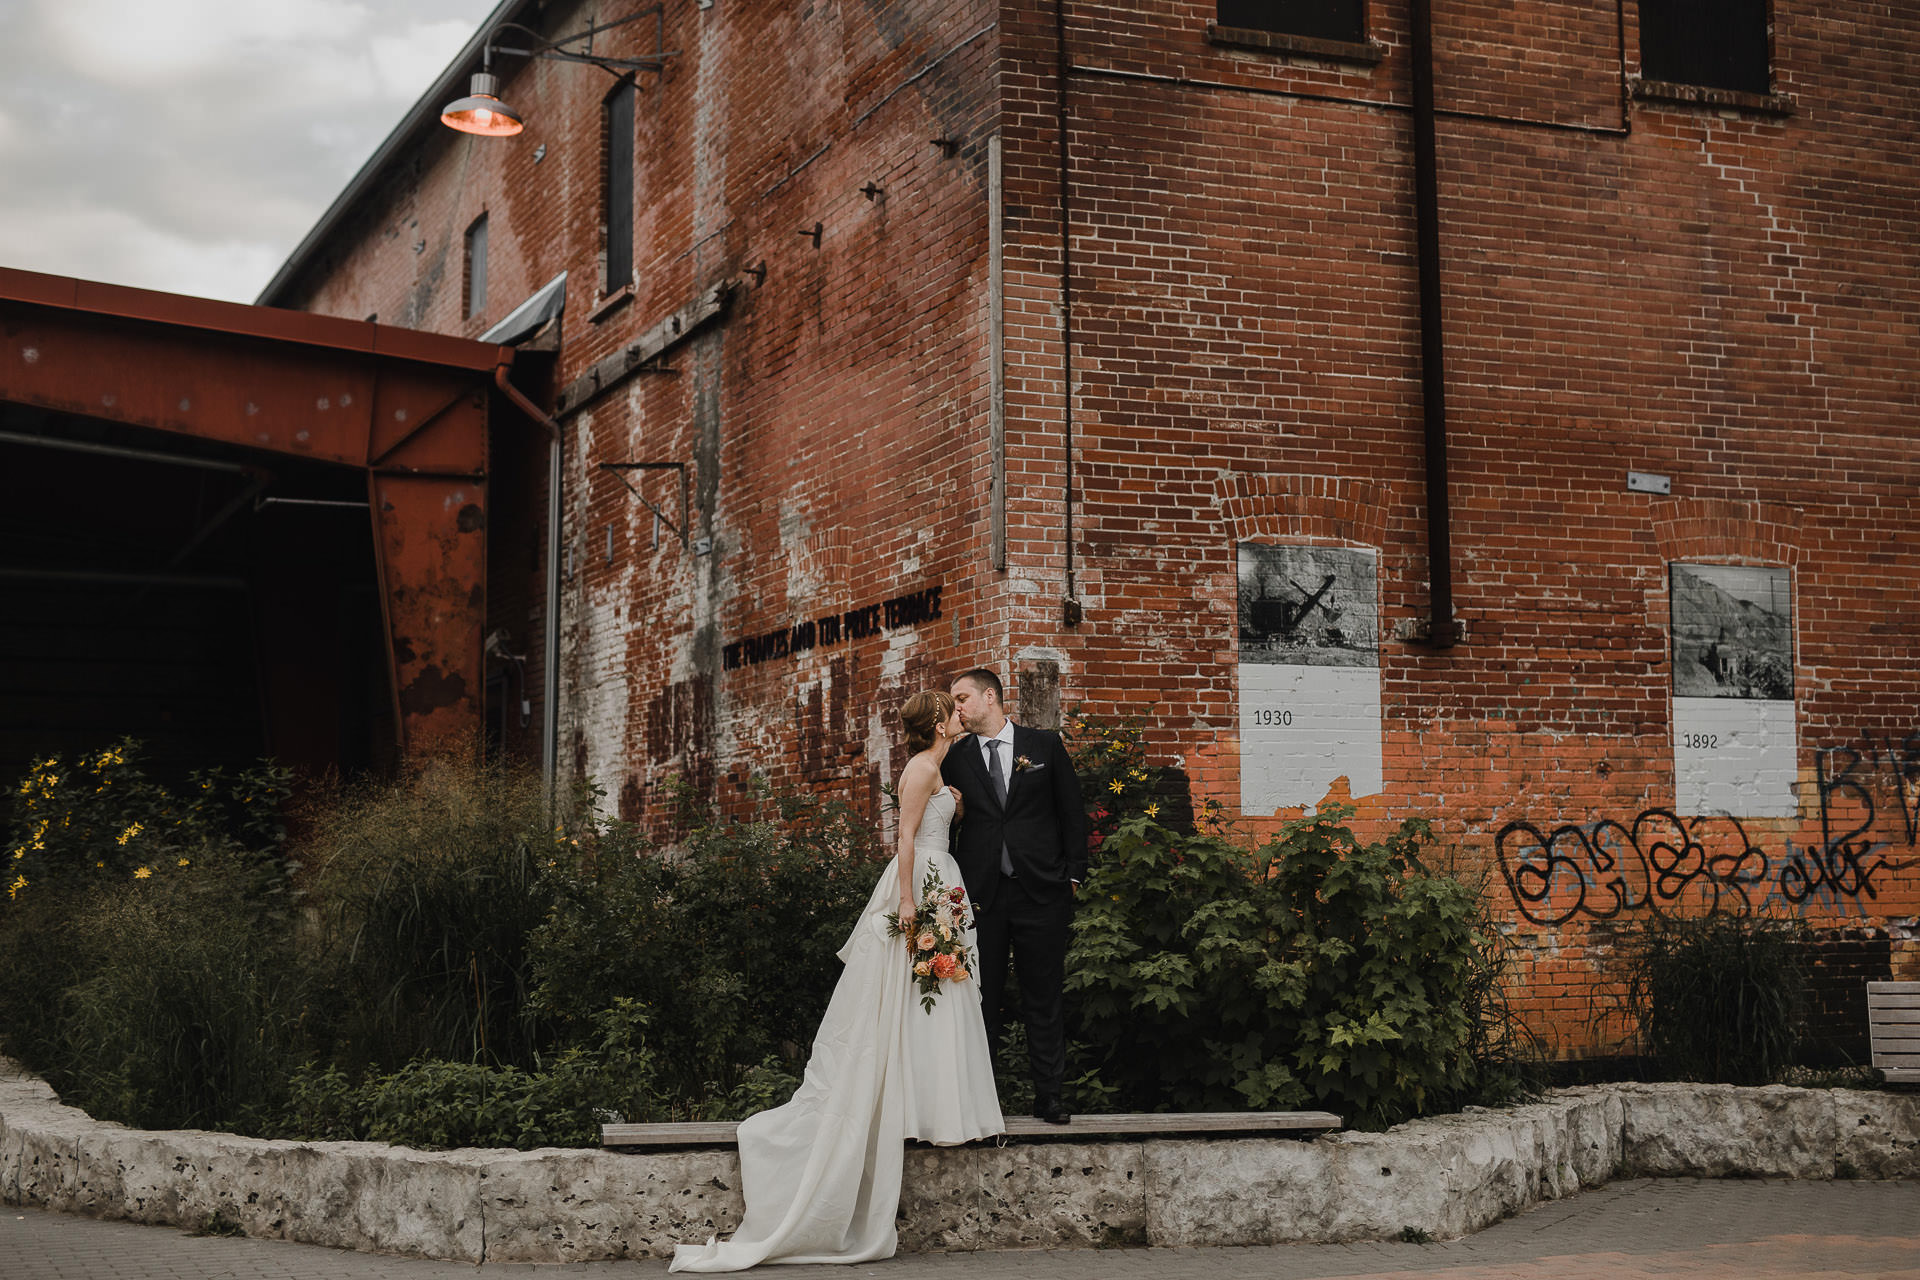 Evergreen Brickworks wedding photographer - wedding portraits at evergreen brickworks